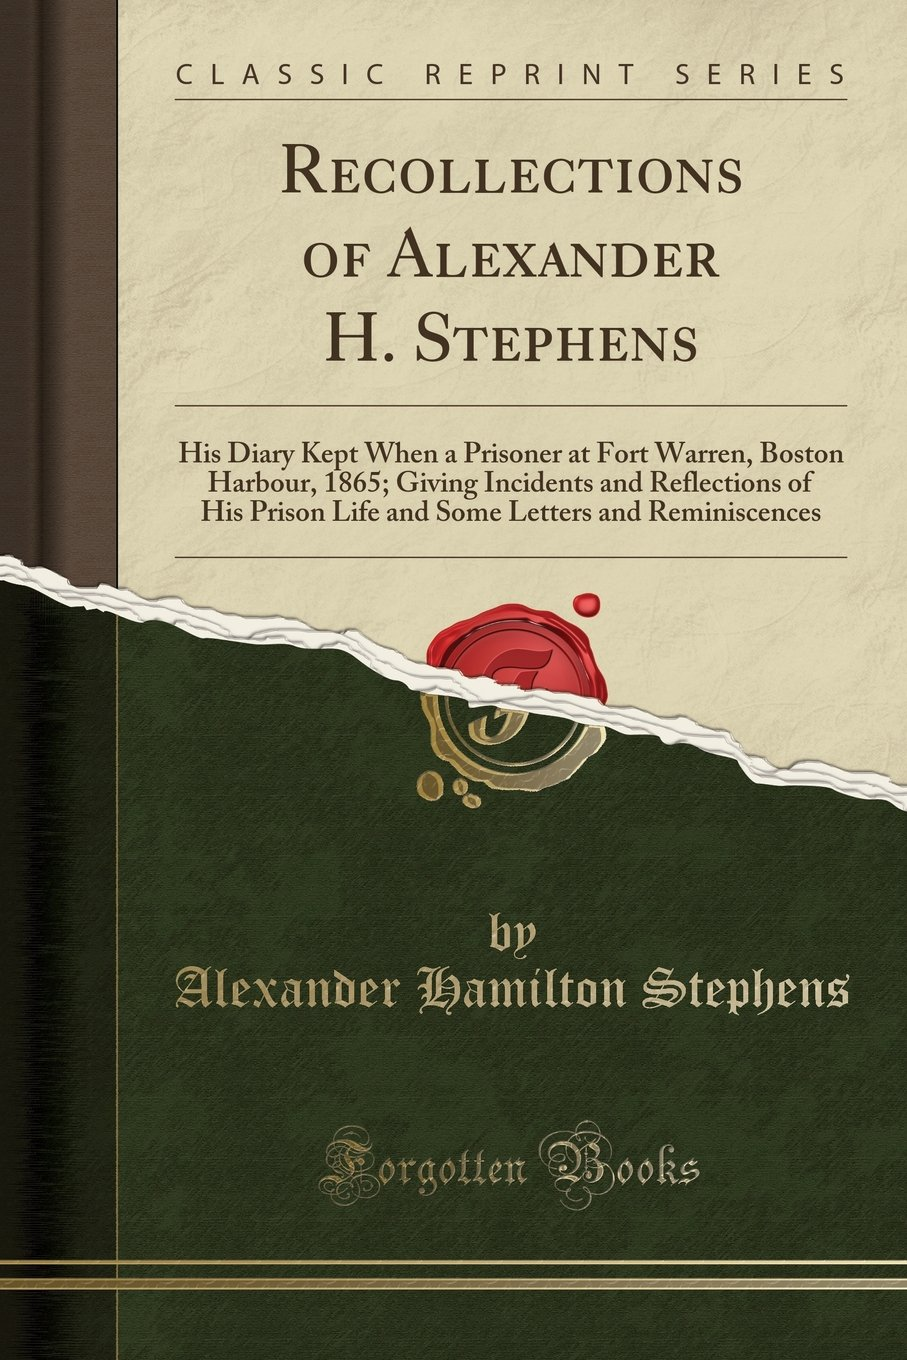 Read Online Recollections of Alexander H. Stephens: His Diary Kept When a Prisoner at Fort Warren, Boston Harbour, 1865; Giving Incidents and Reflections of His ... Letters and Reminiscences (Classic Reprint) PDF